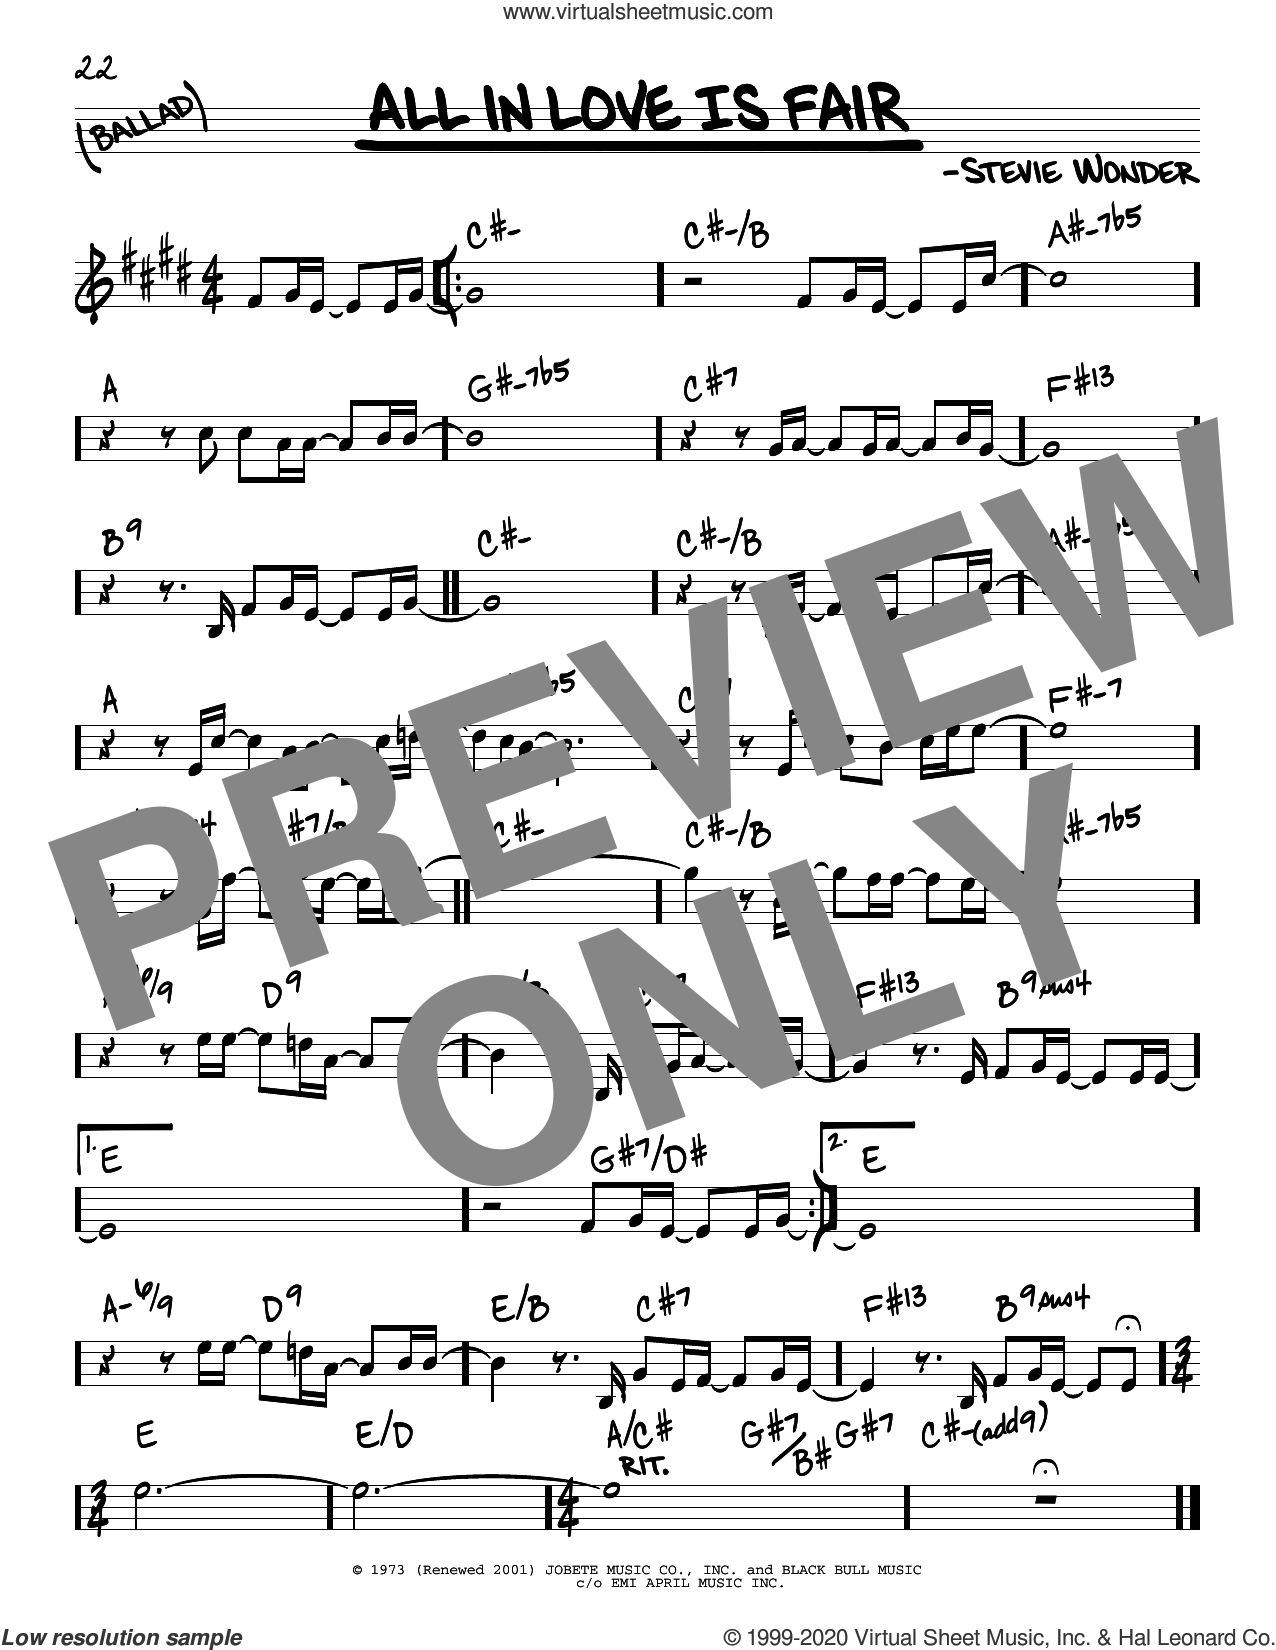 All In Love Is Fair sheet music for voice and other instruments (real book) by Stevie Wonder, intermediate skill level